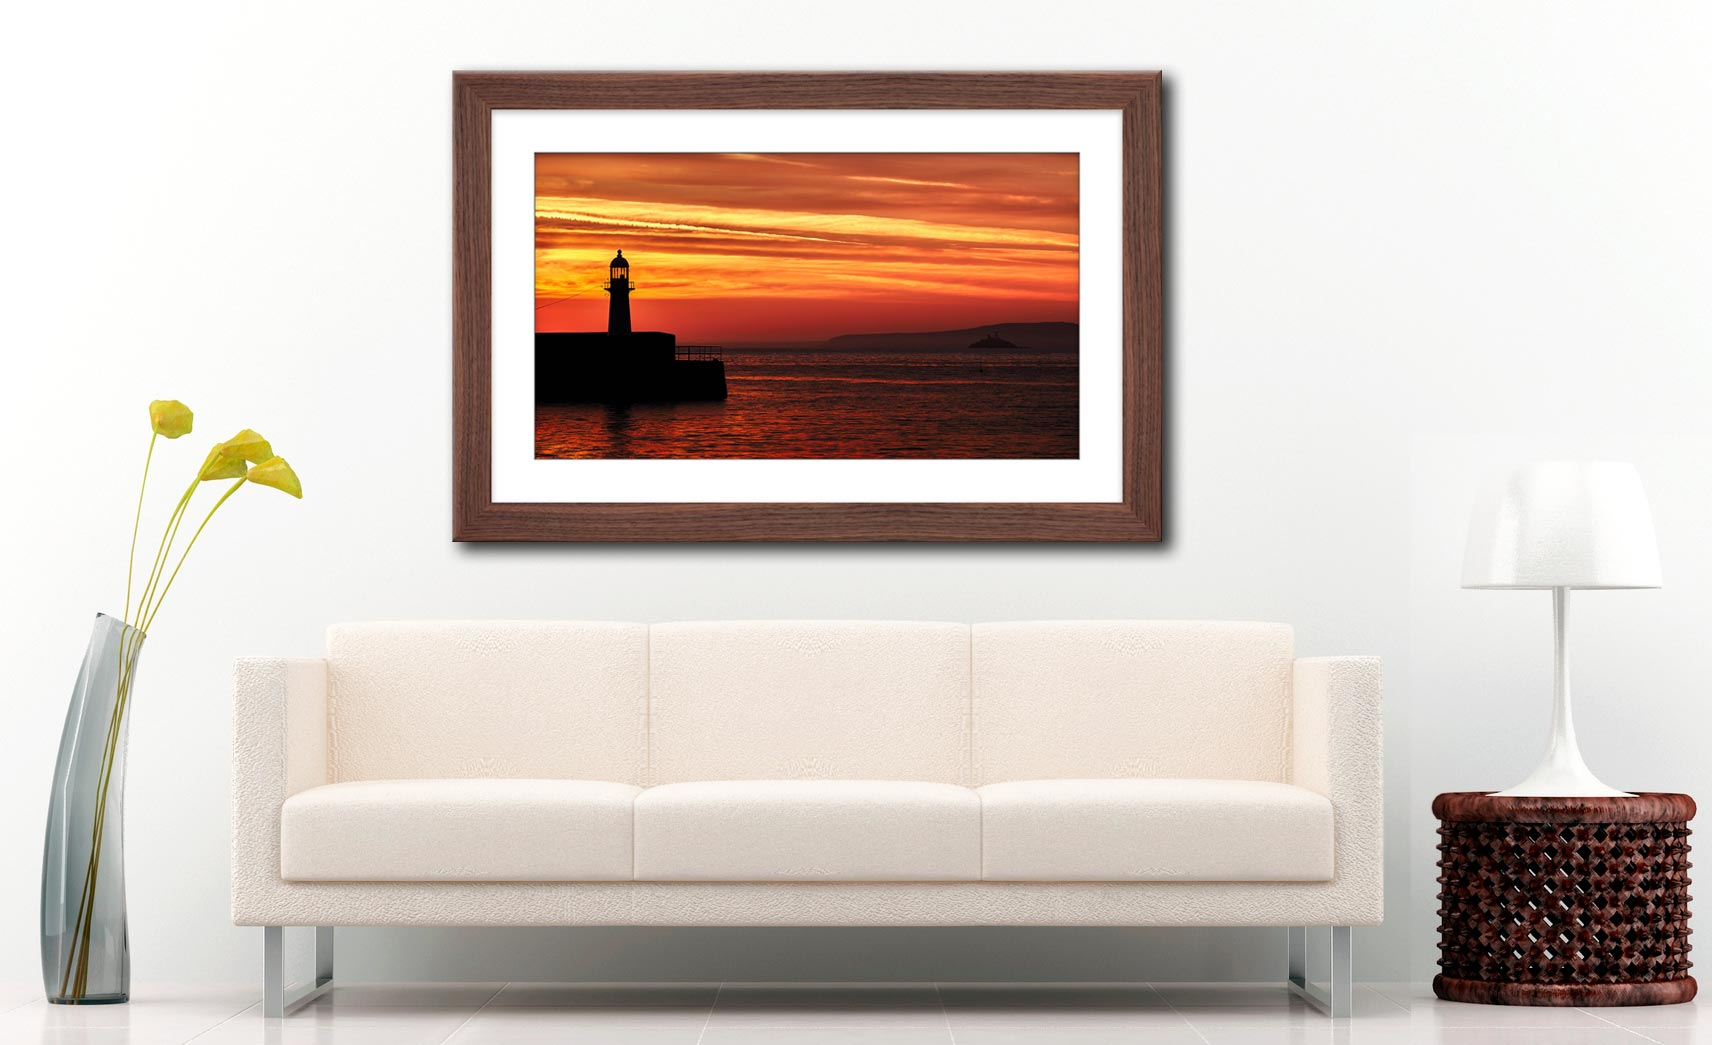 St Ives Lighthouses - Framed Print with Mount on Wall